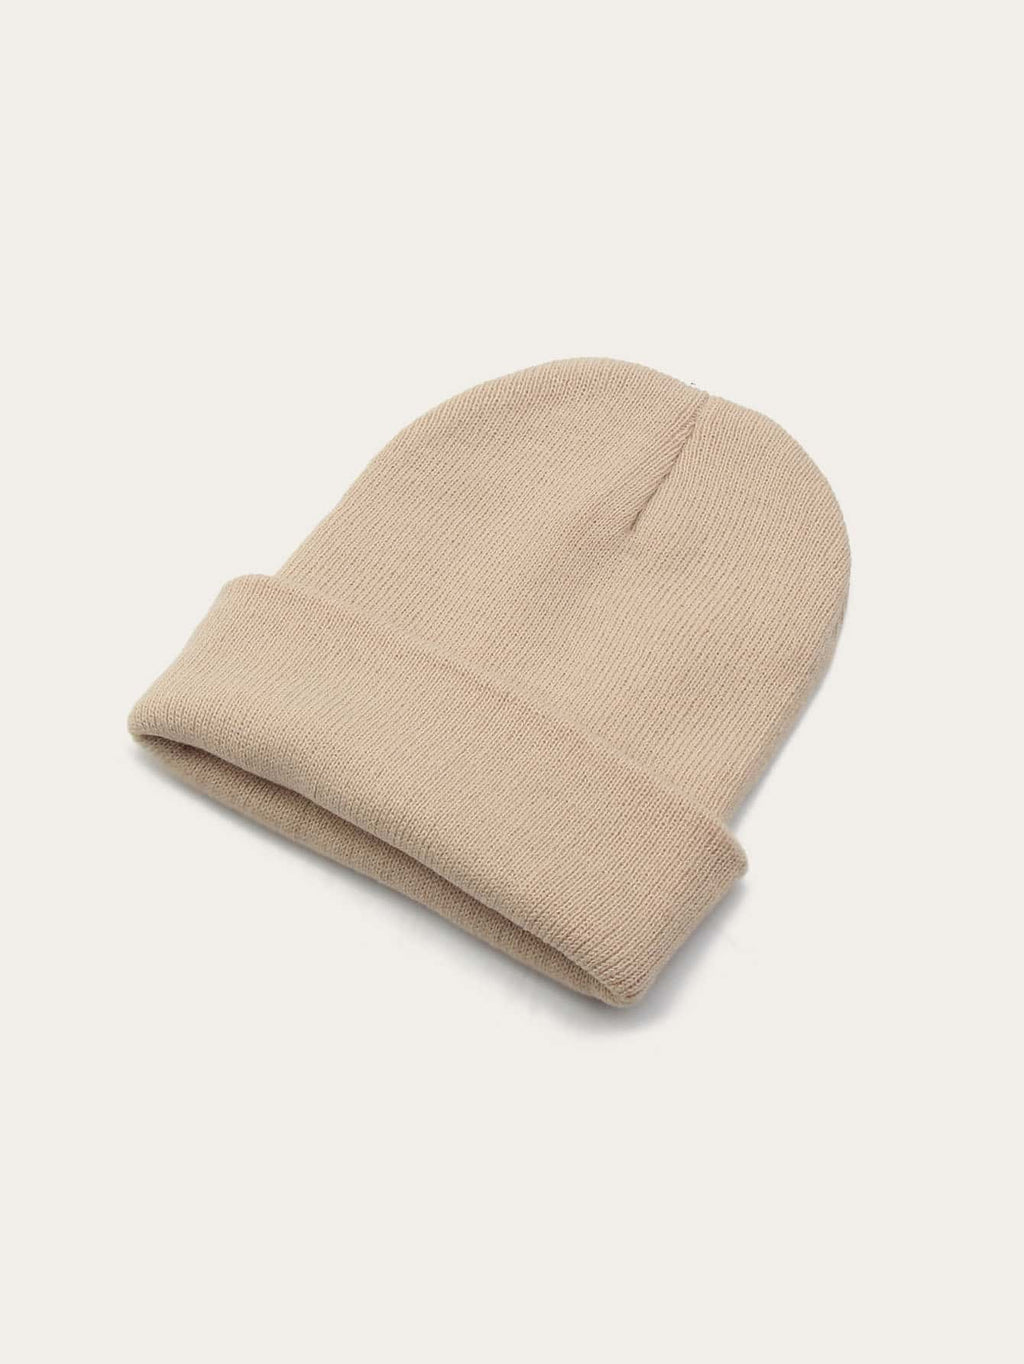 Minimalist Plain Beanie - INS | Online Fashion Free Shipping Clothing, Dresses, Tops, Shoes